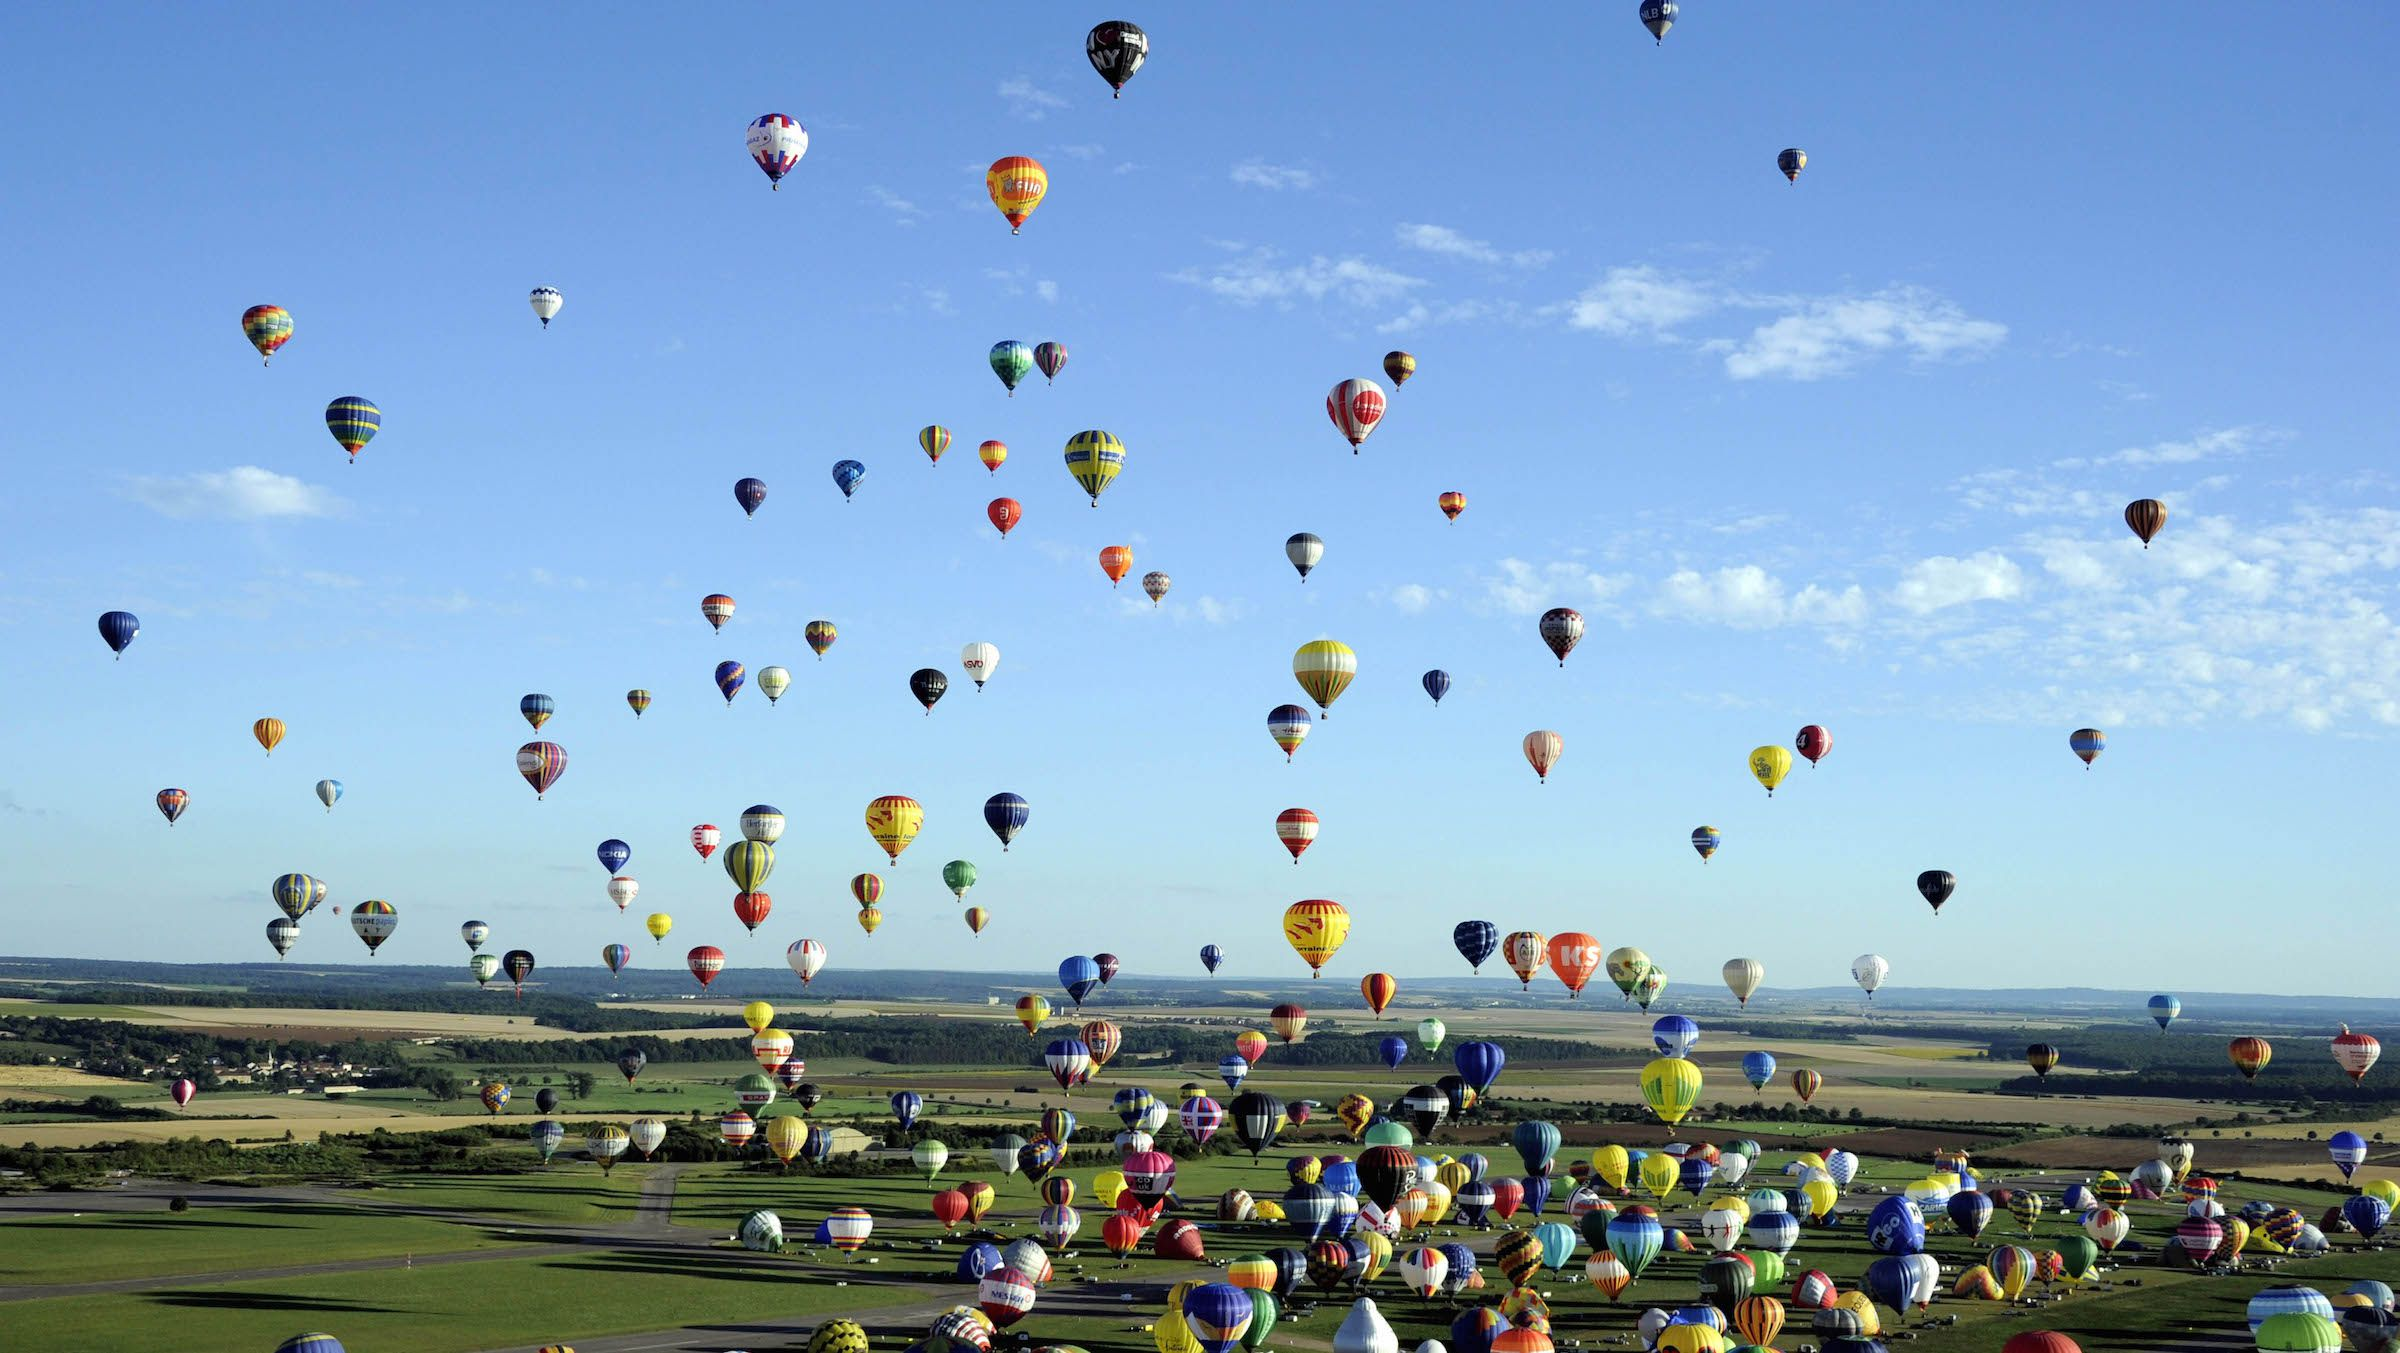 """Over four hundred  hot-air balloons prepare to take off in Chambley-Bussieres, eastern France, on Wednesday, July 31, 2013 in an attempt to set a world record for collective taking-off during the event """"Lorraine Mondial air ballons"""", an international hot-air balloon meeting."""